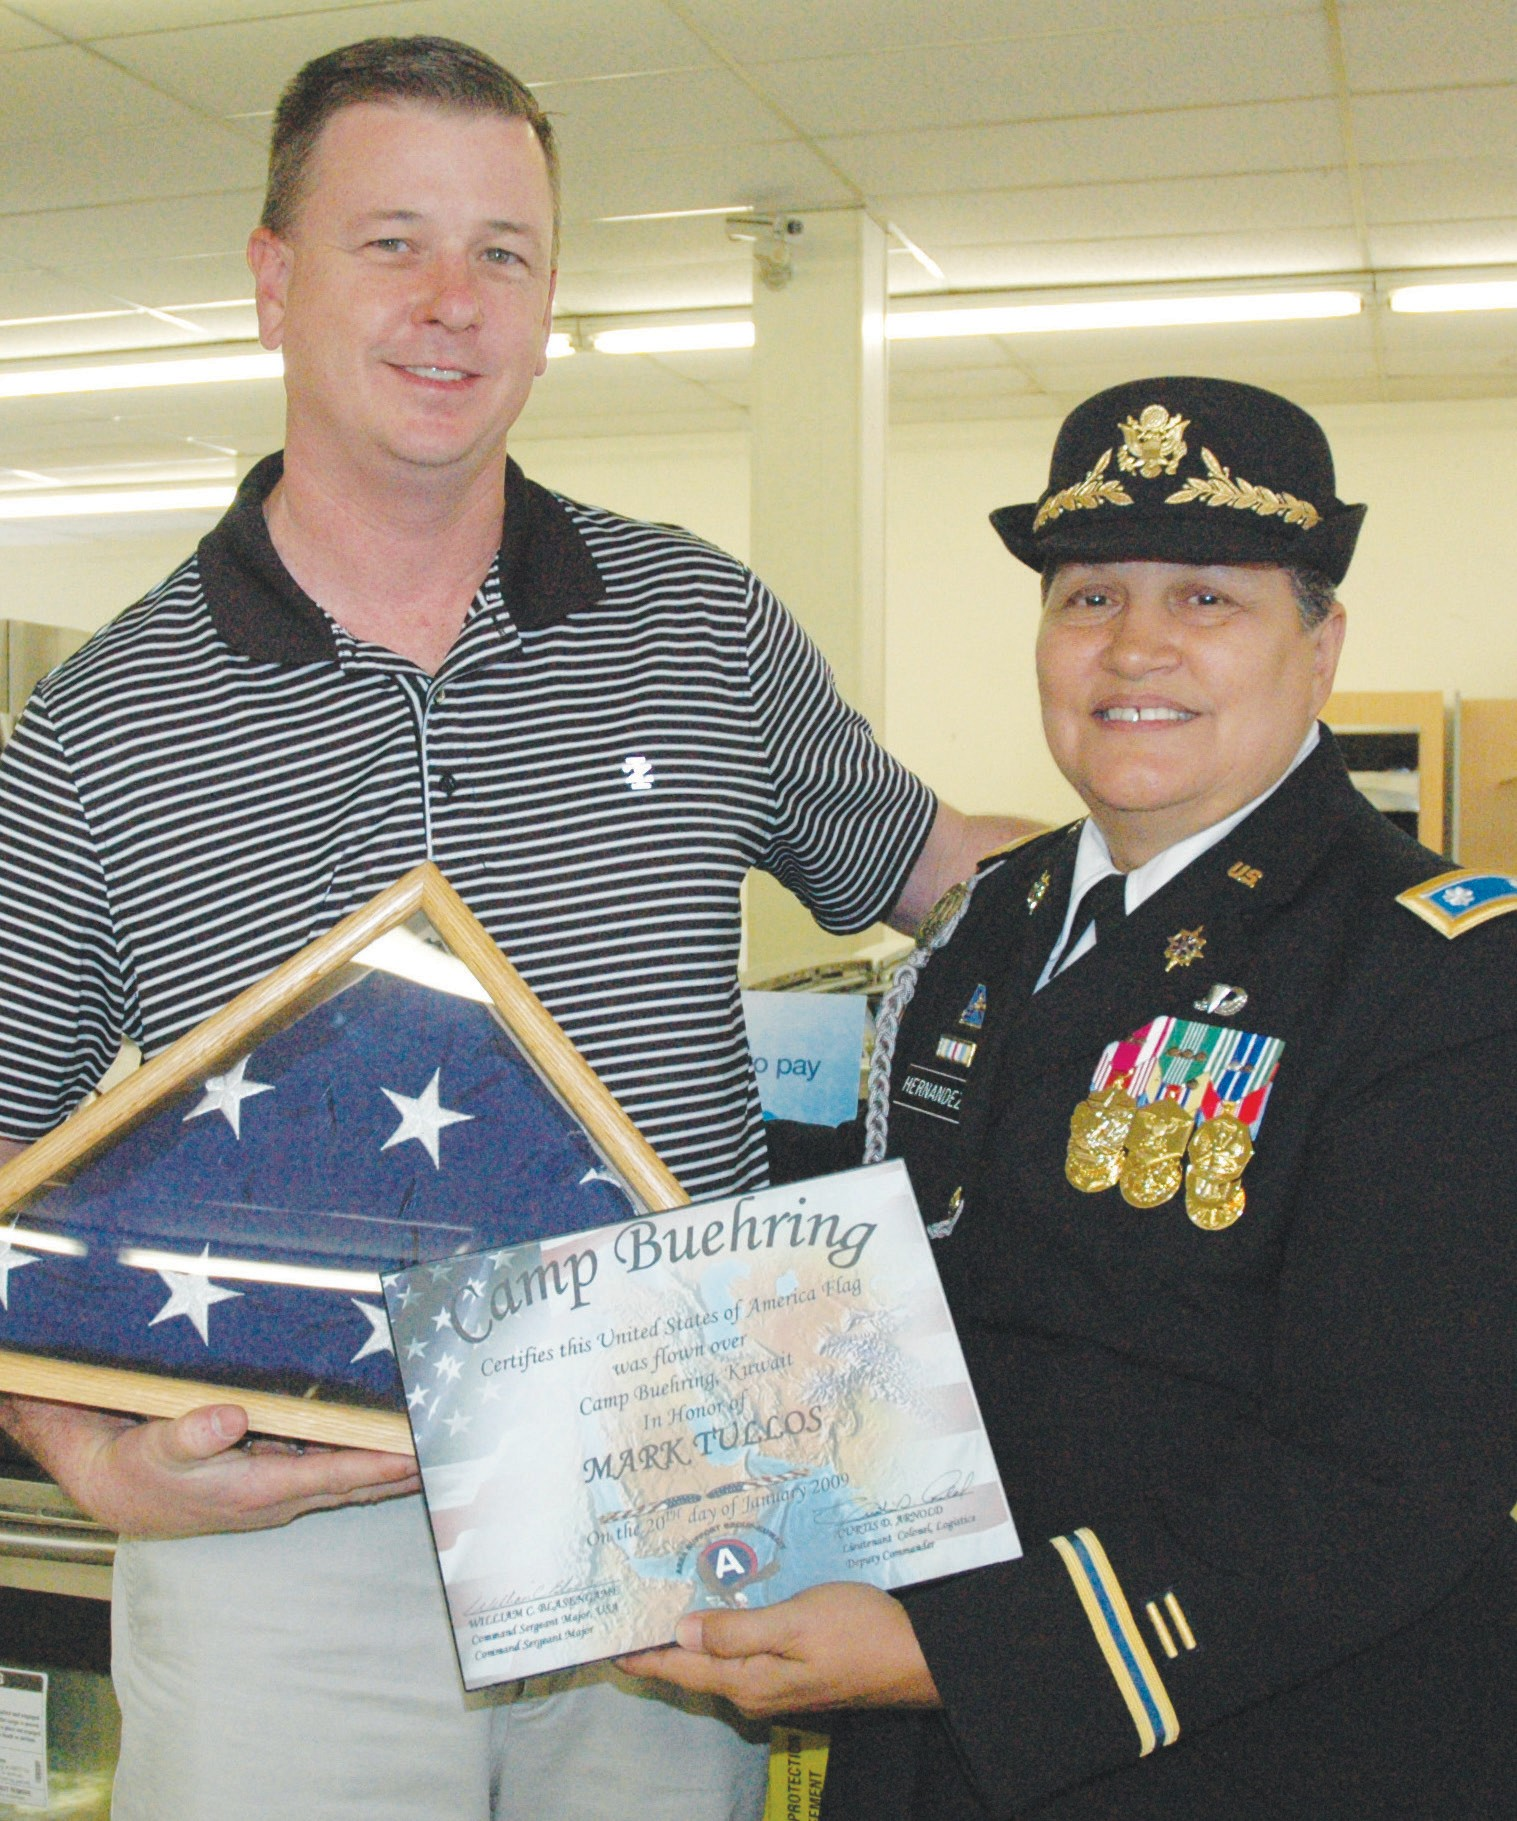 Mark Tullos, owner of the Sears store in Pleasanton, receives his flag, flown over Camp Buehring, Kuwait during LTC Retired U. S. Army Veronica R. Hernandez' tour in 2009.